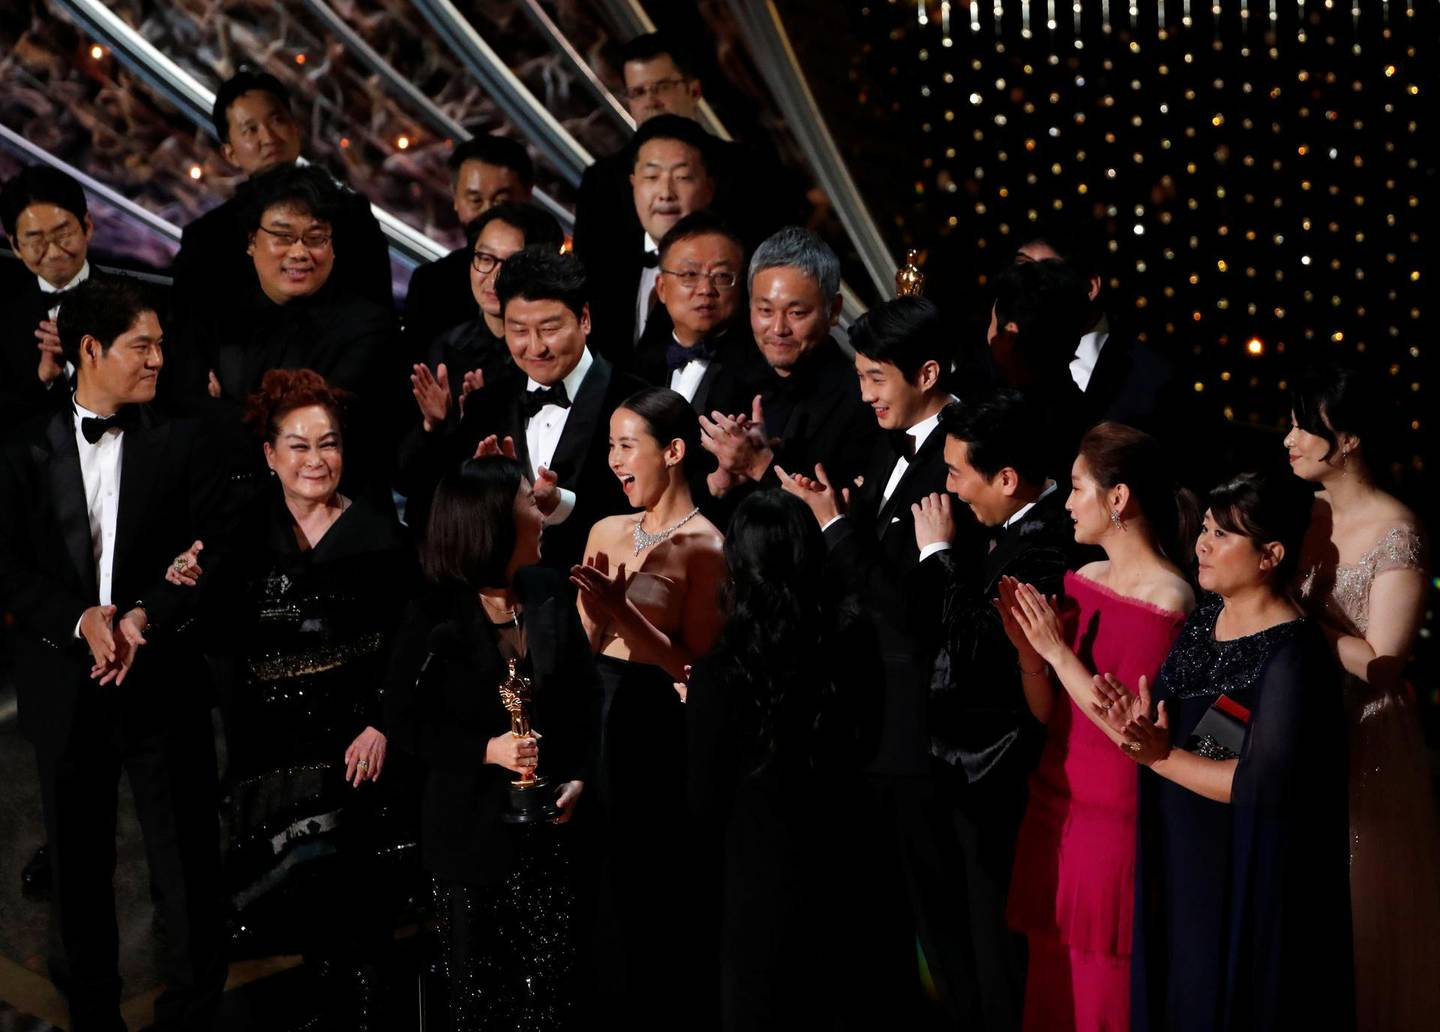 """FILE PHOTO: Kwak Sin Ae and Bong Joon-ho win the Oscar for Best Picture for """"Parasite"""" at the 92nd Academy Awards in Hollywood, Los Angeles, California, U.S., February 9, 2020. REUTERS/Mario Anzuoni - HP1EG2A0CUR5E/File Photo"""